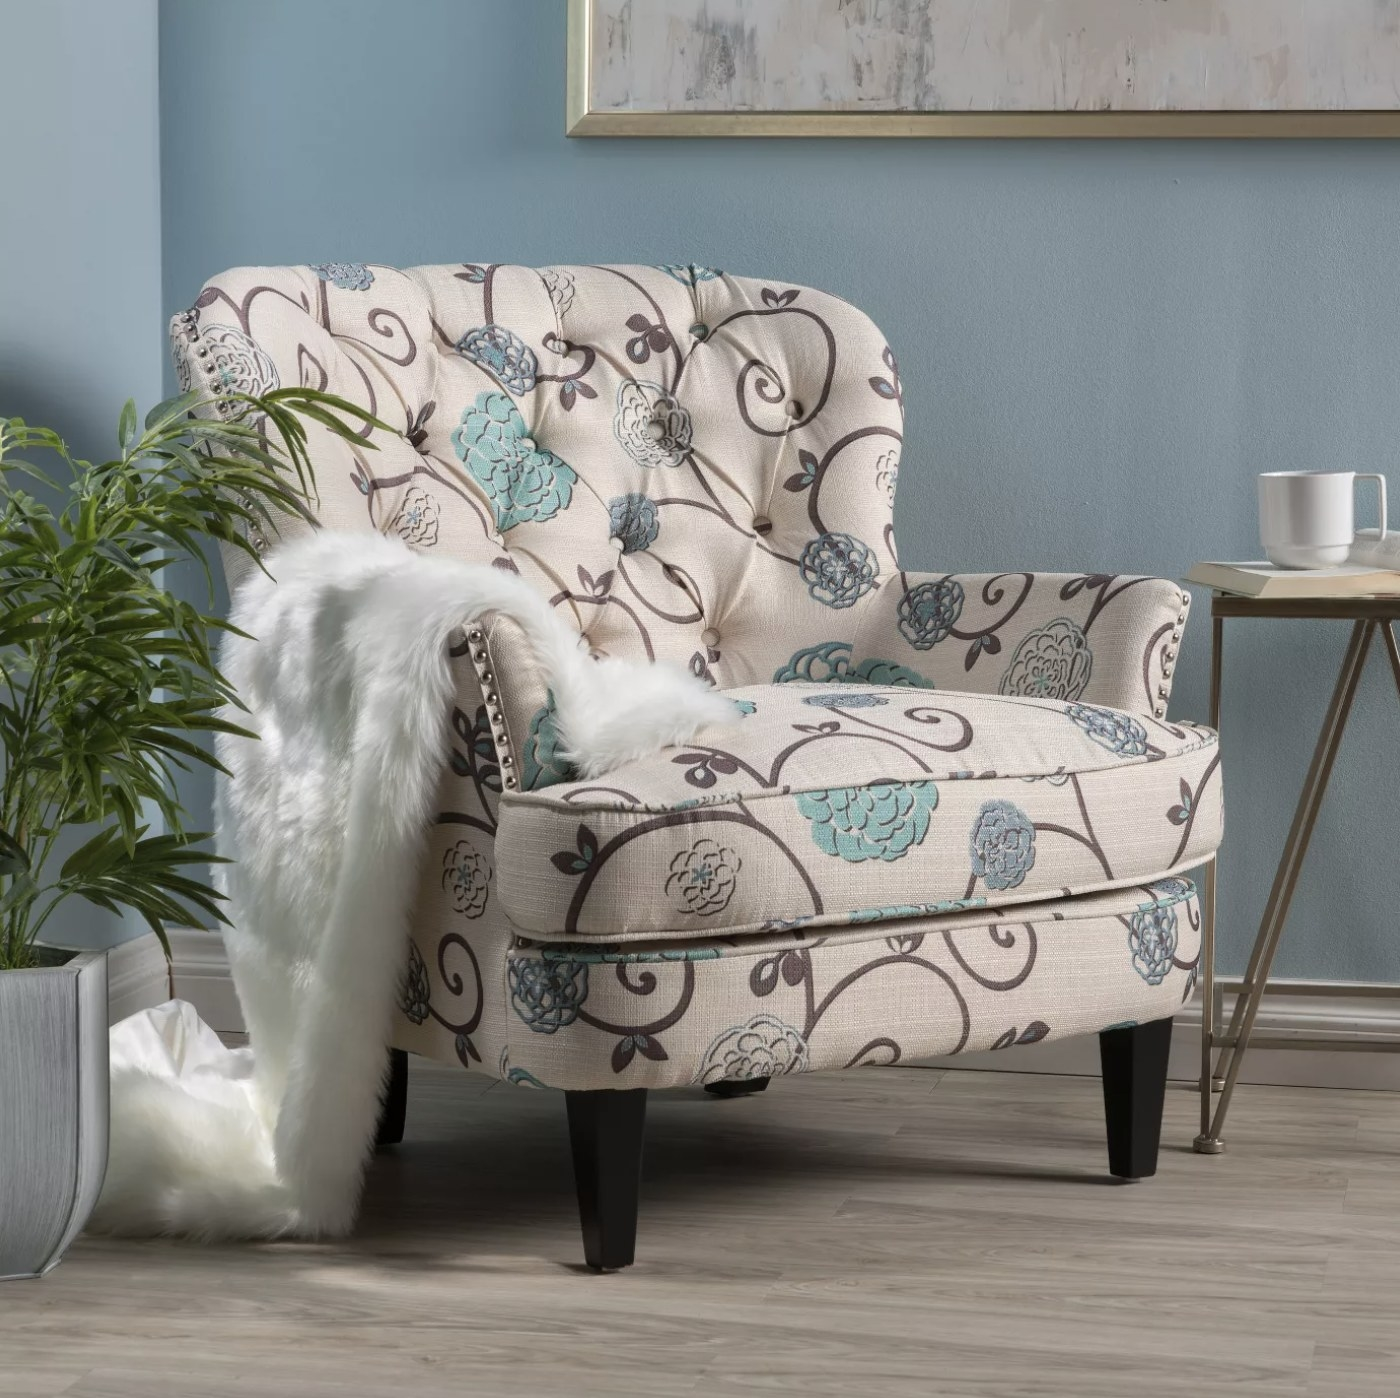 A cream accent chair with a floral design